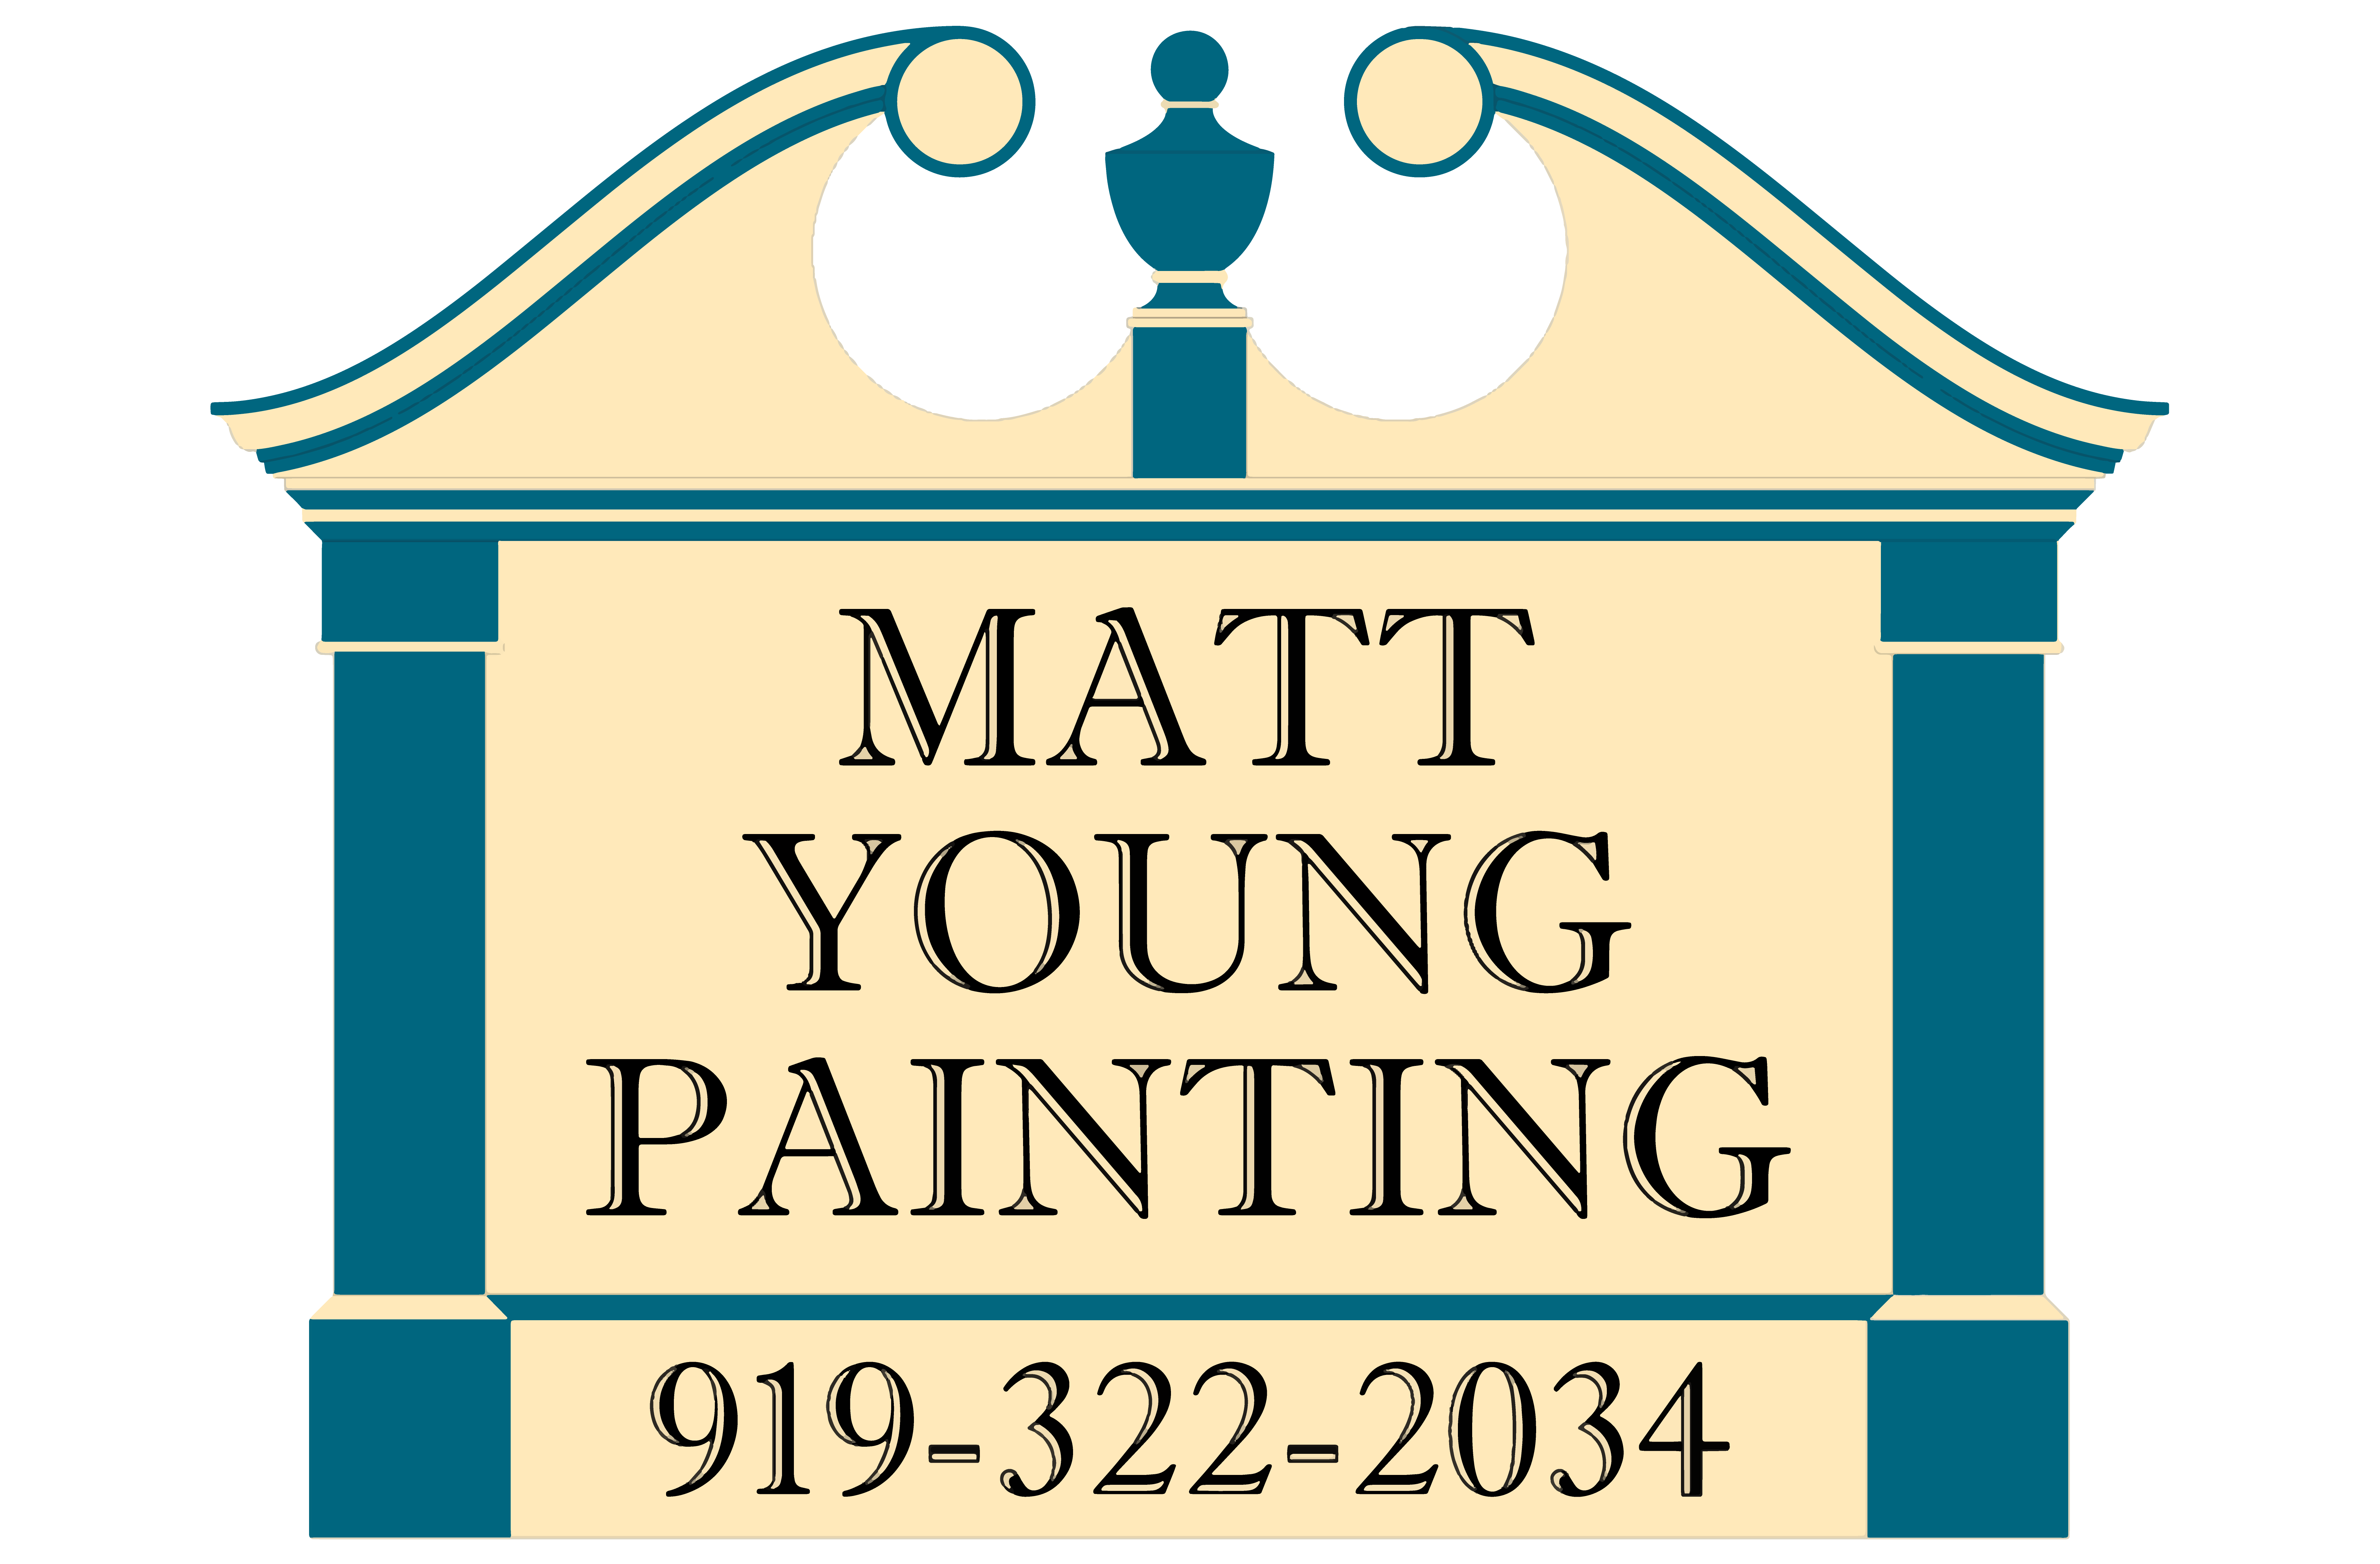 Matt Young Painting